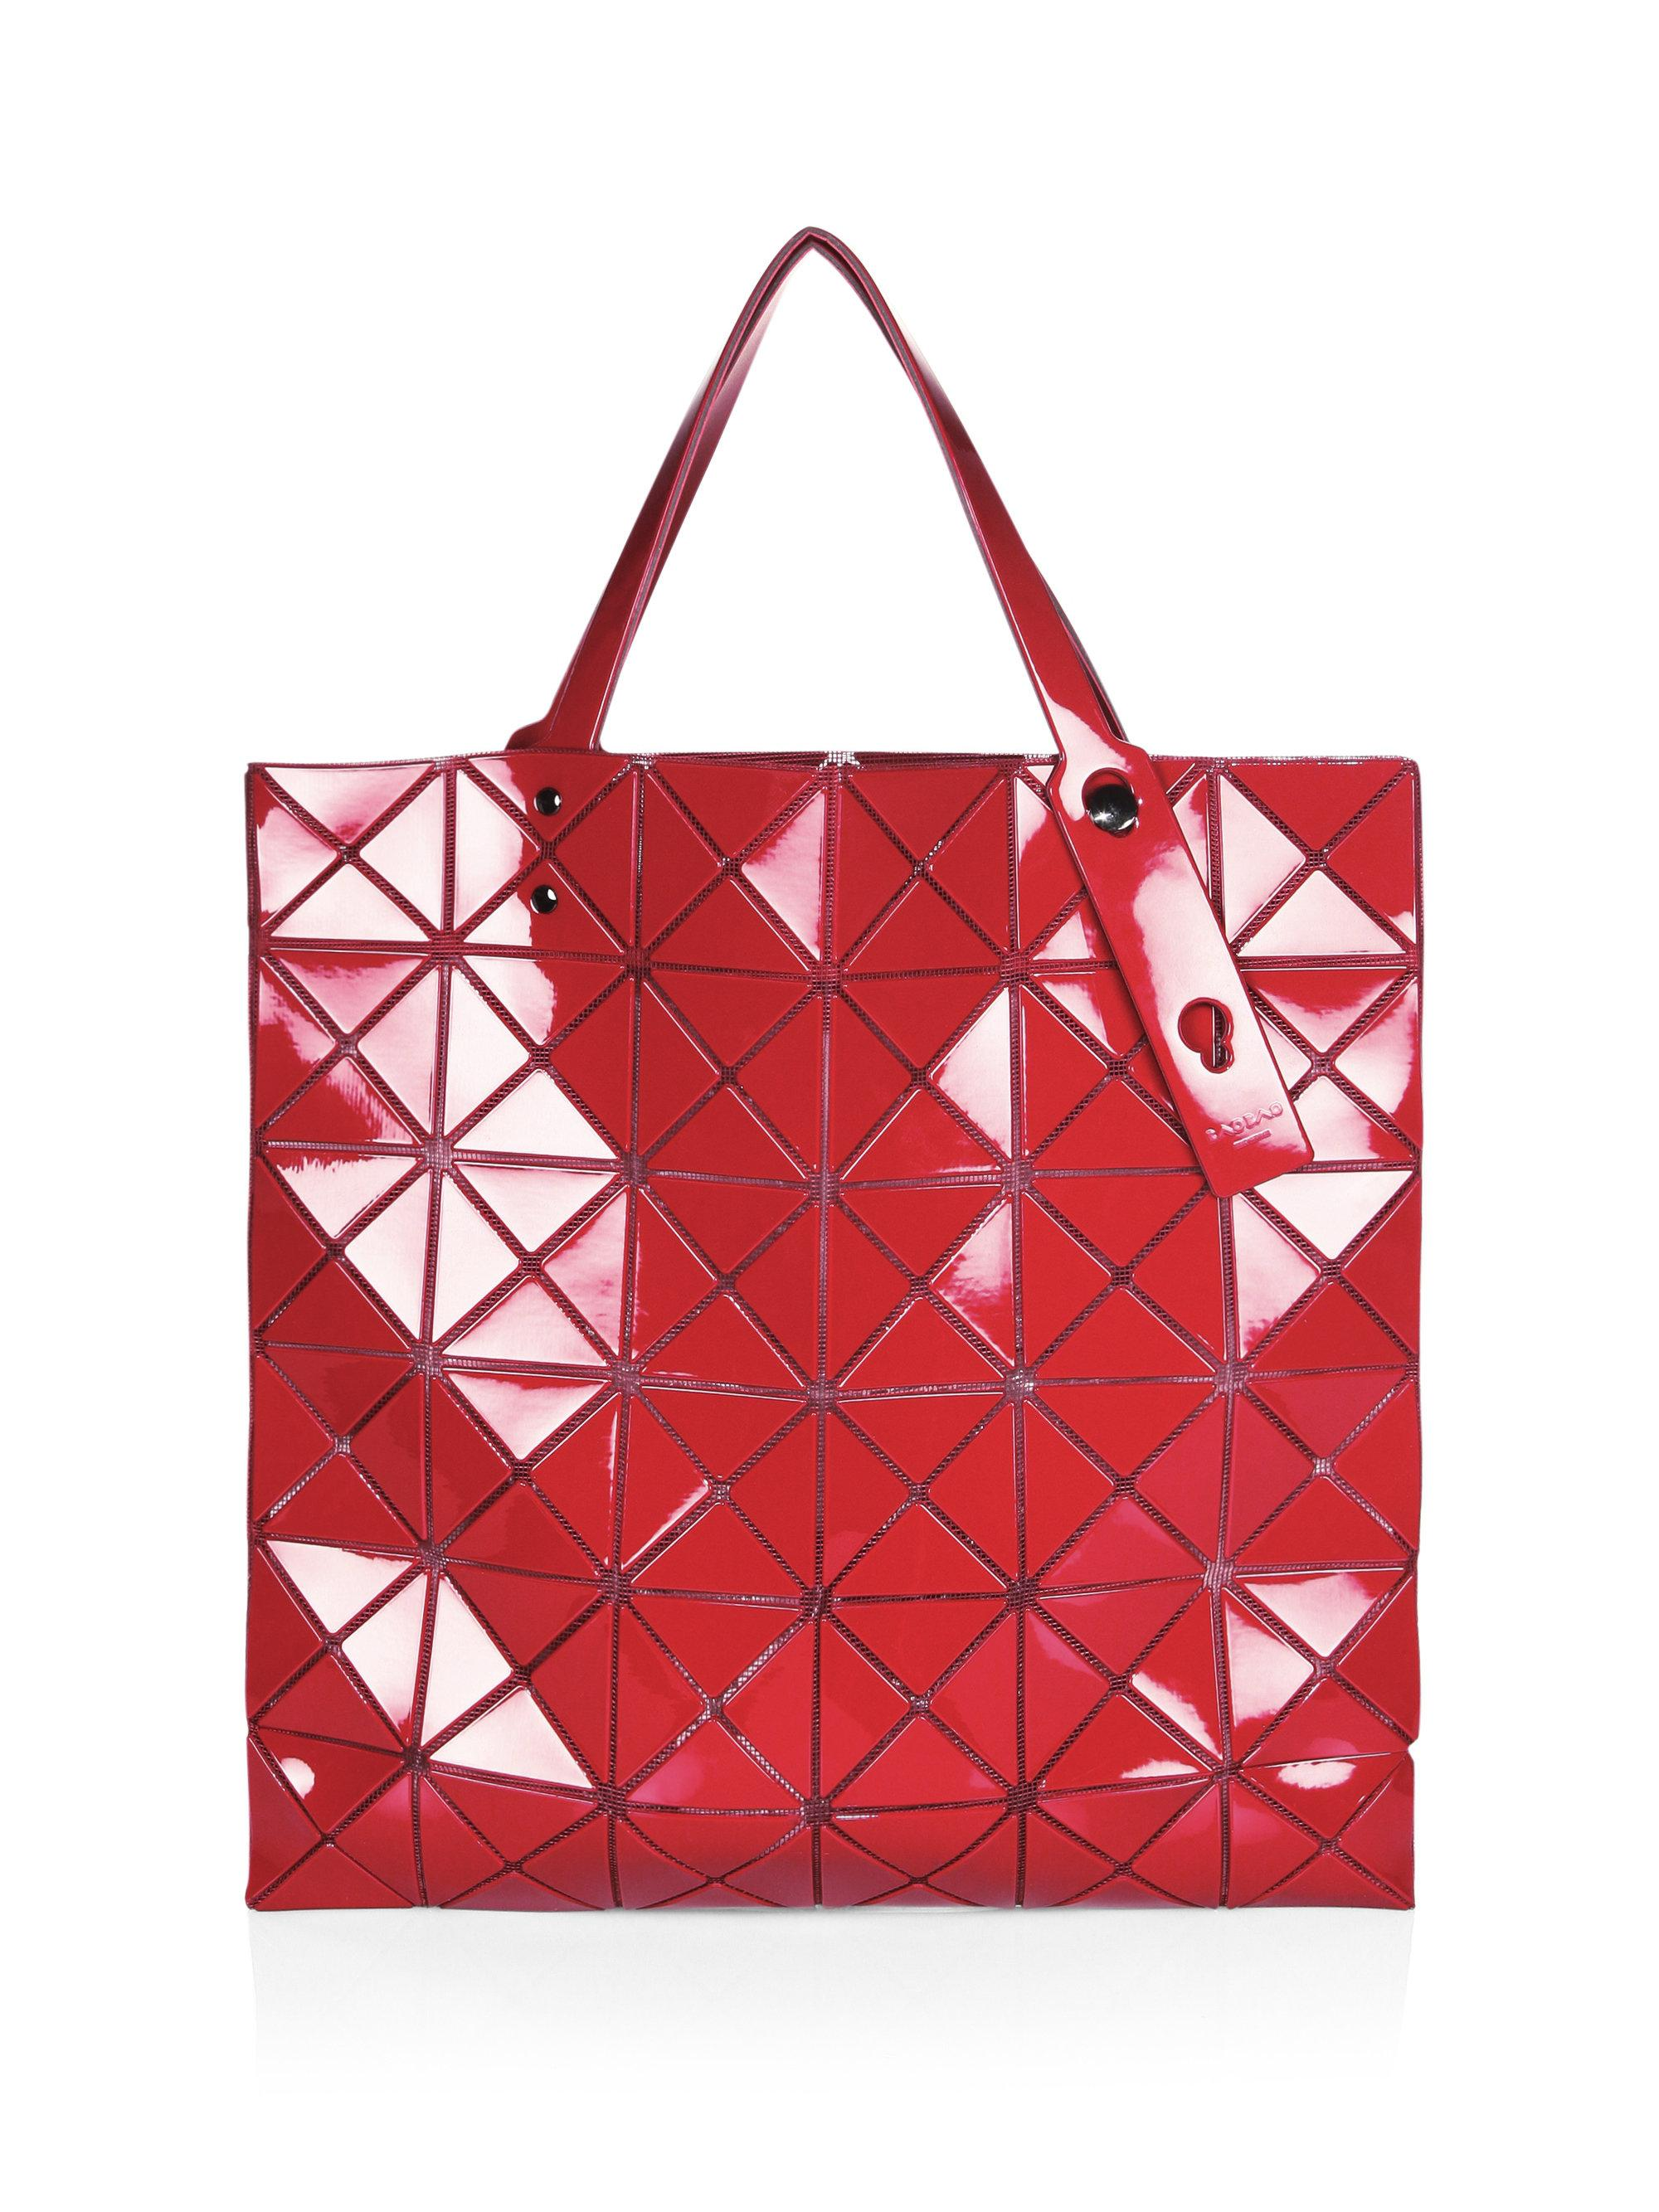 Bao Bao Issey Miyake Lucent One-tone Tote in Red - Save 42% - Lyst 1a8b6ee80a764